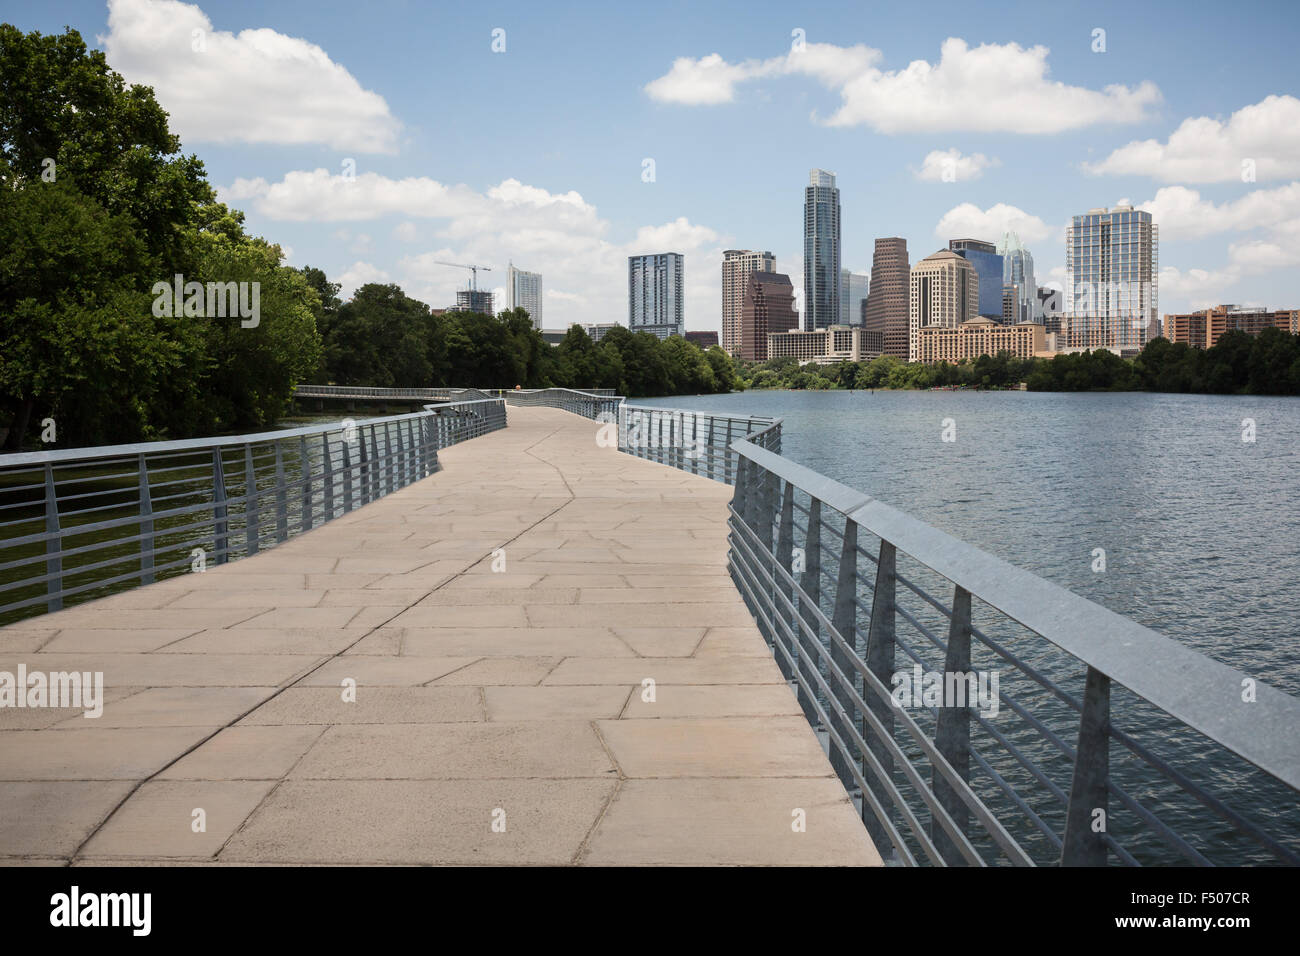 The Boardwalk Trail at Lady Bird Lake in Austin, Texas - Stock Image